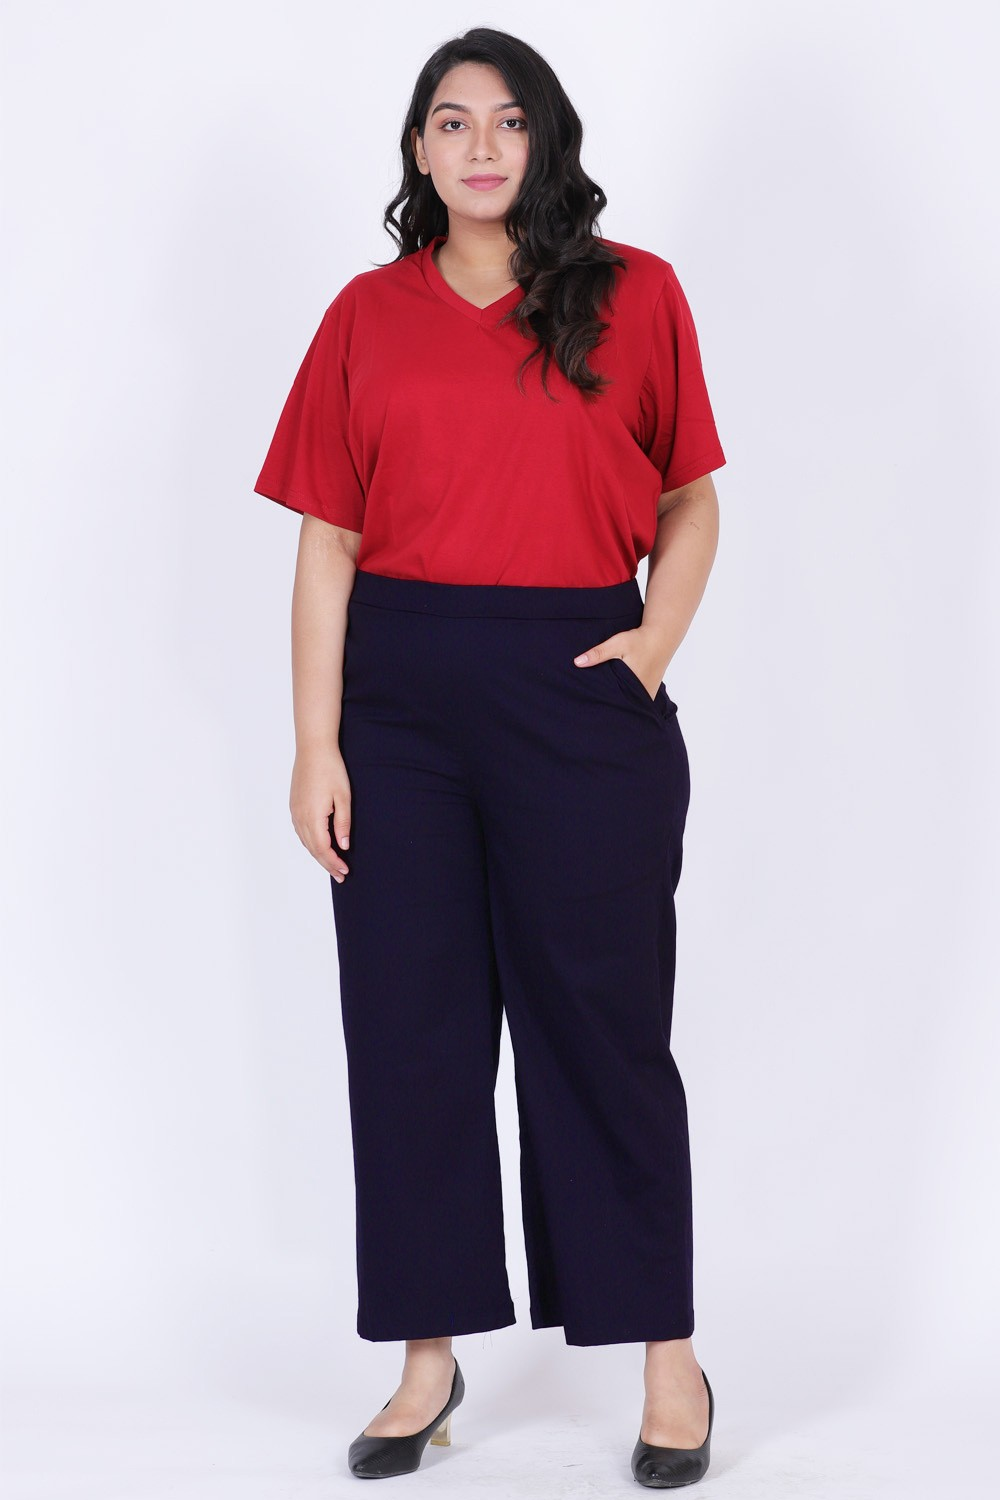 Plus Size trousers